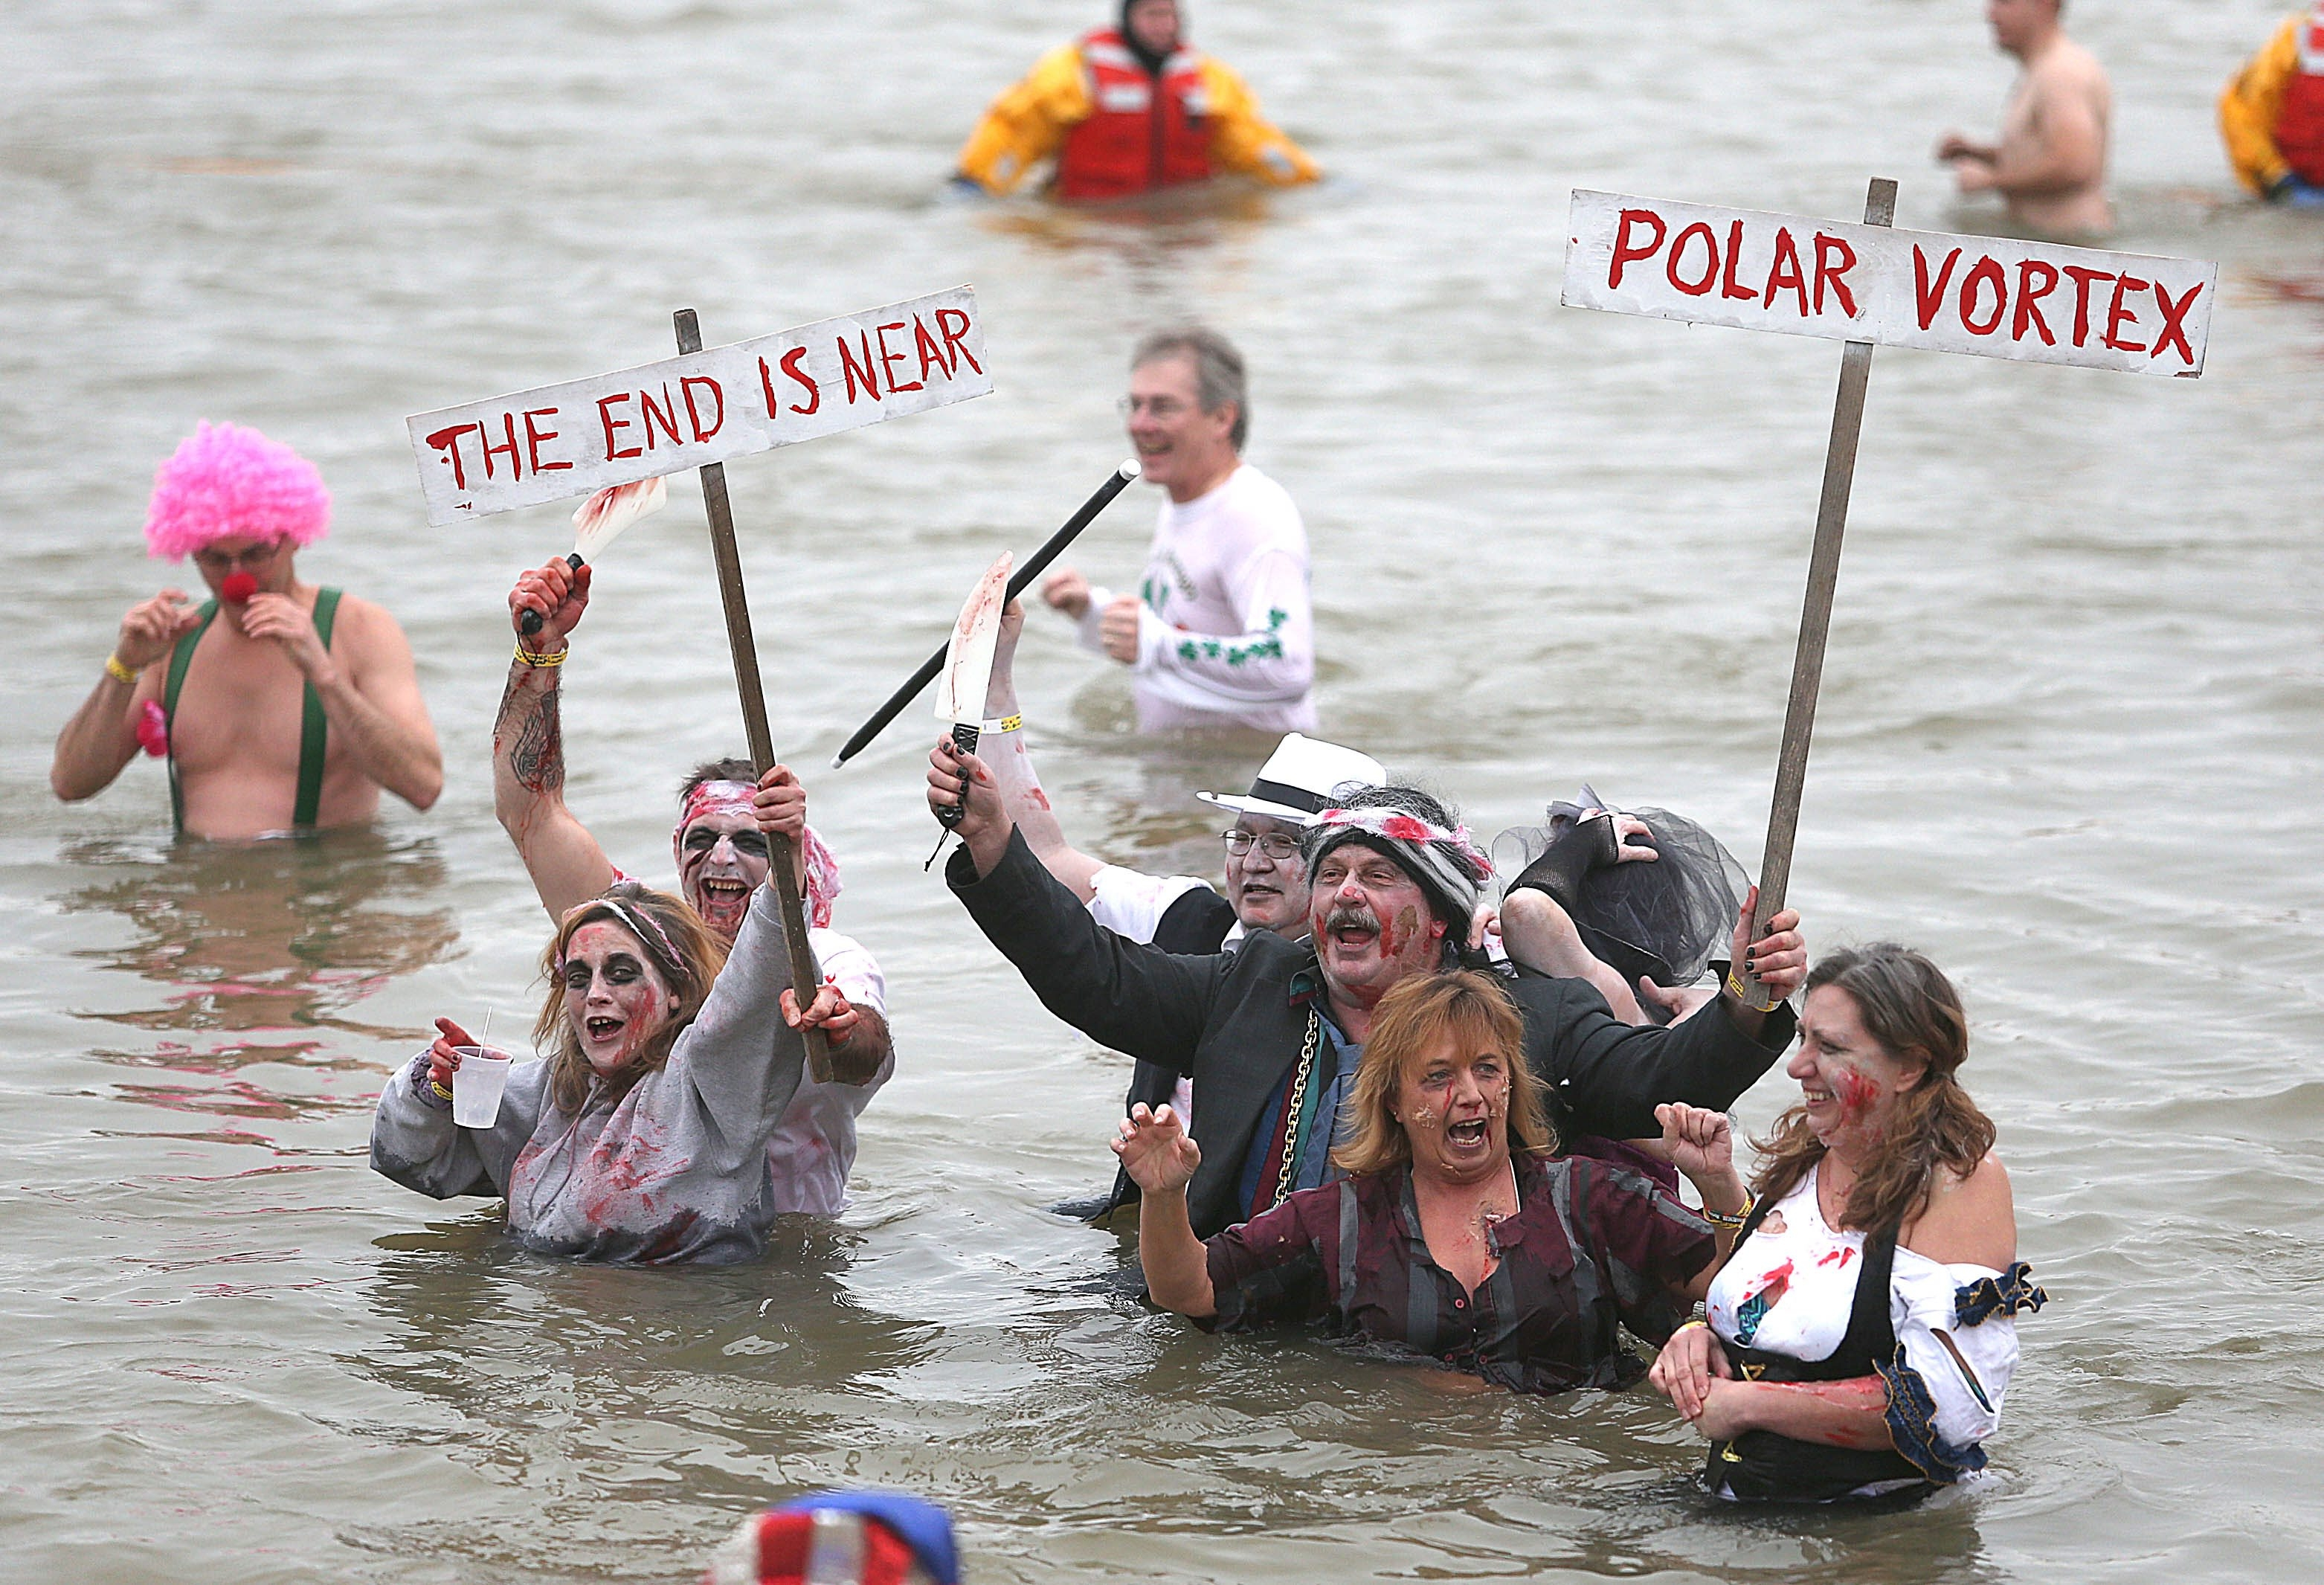 Participants in the Silver Creek Polar Bear Swim frolic in the frigid waters near the Jackson Street beach on Sunday. About 100 swimmers took the plunge this year.